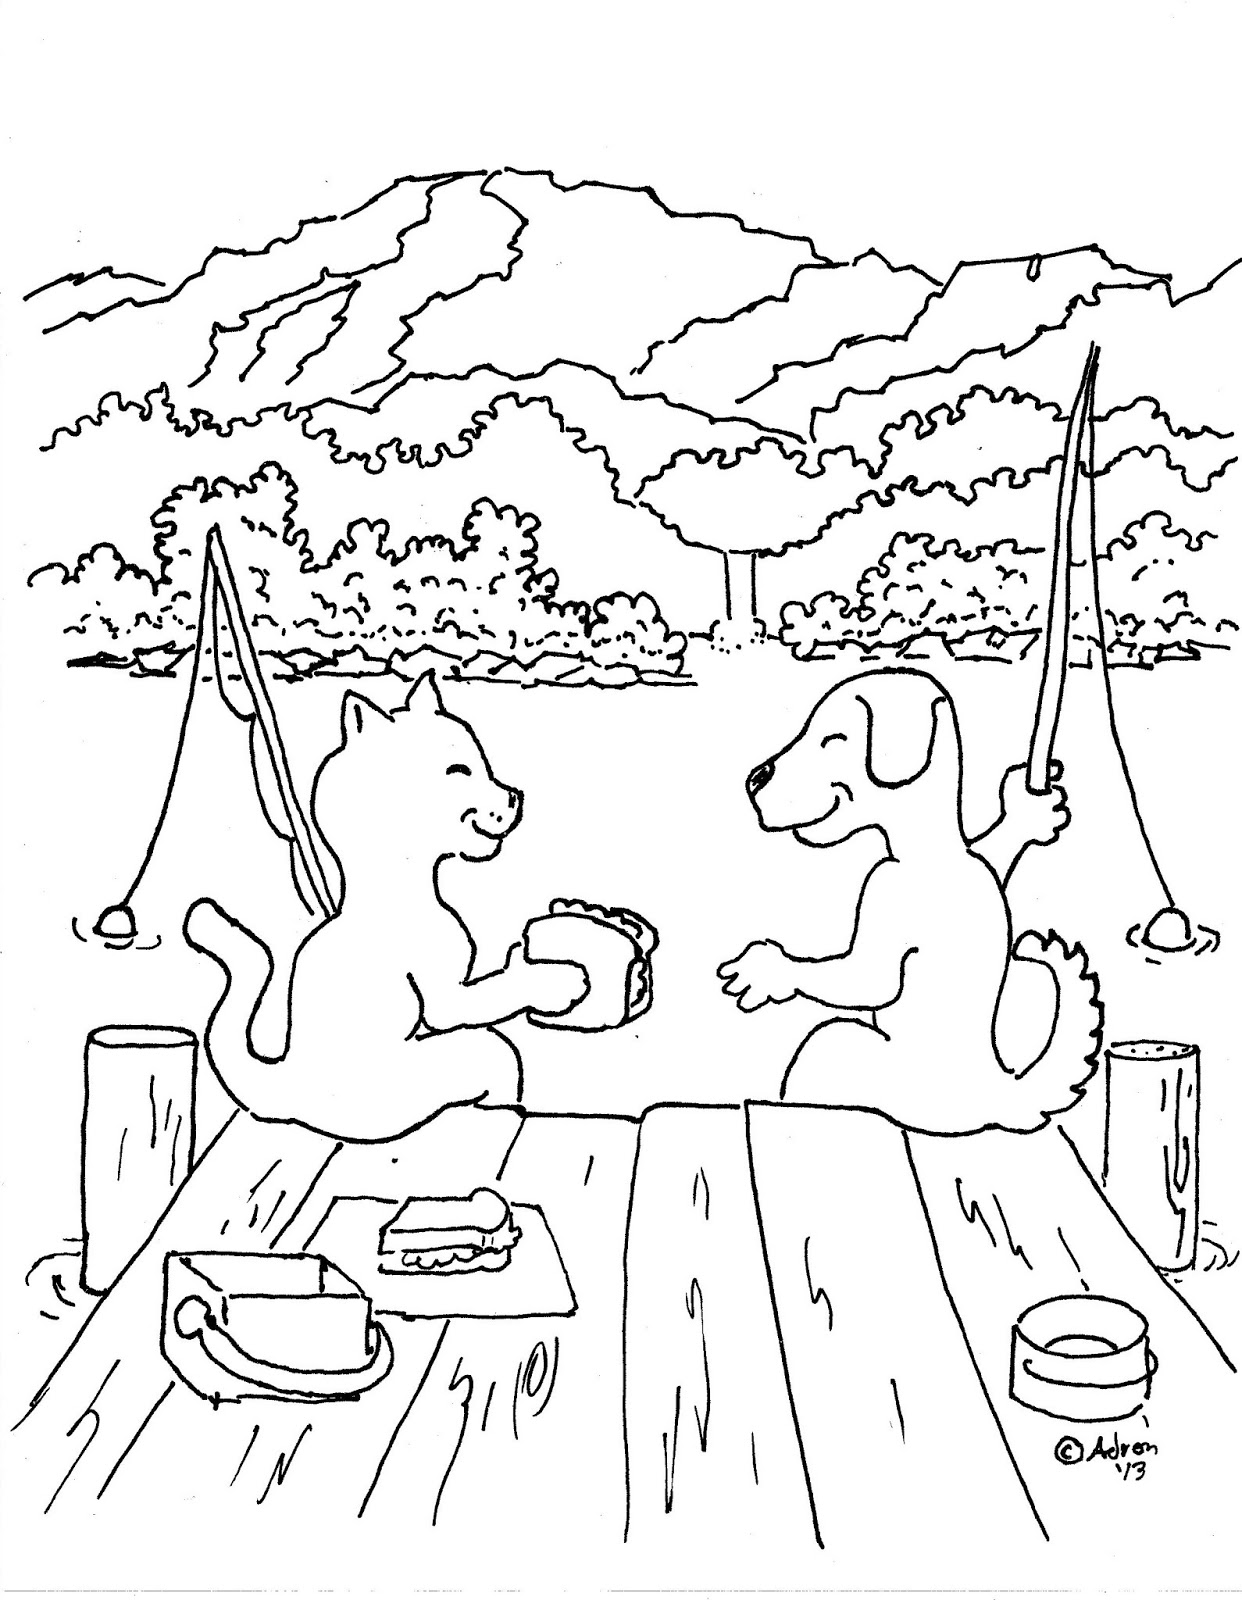 dog coloring pages realistic fish - photo#25